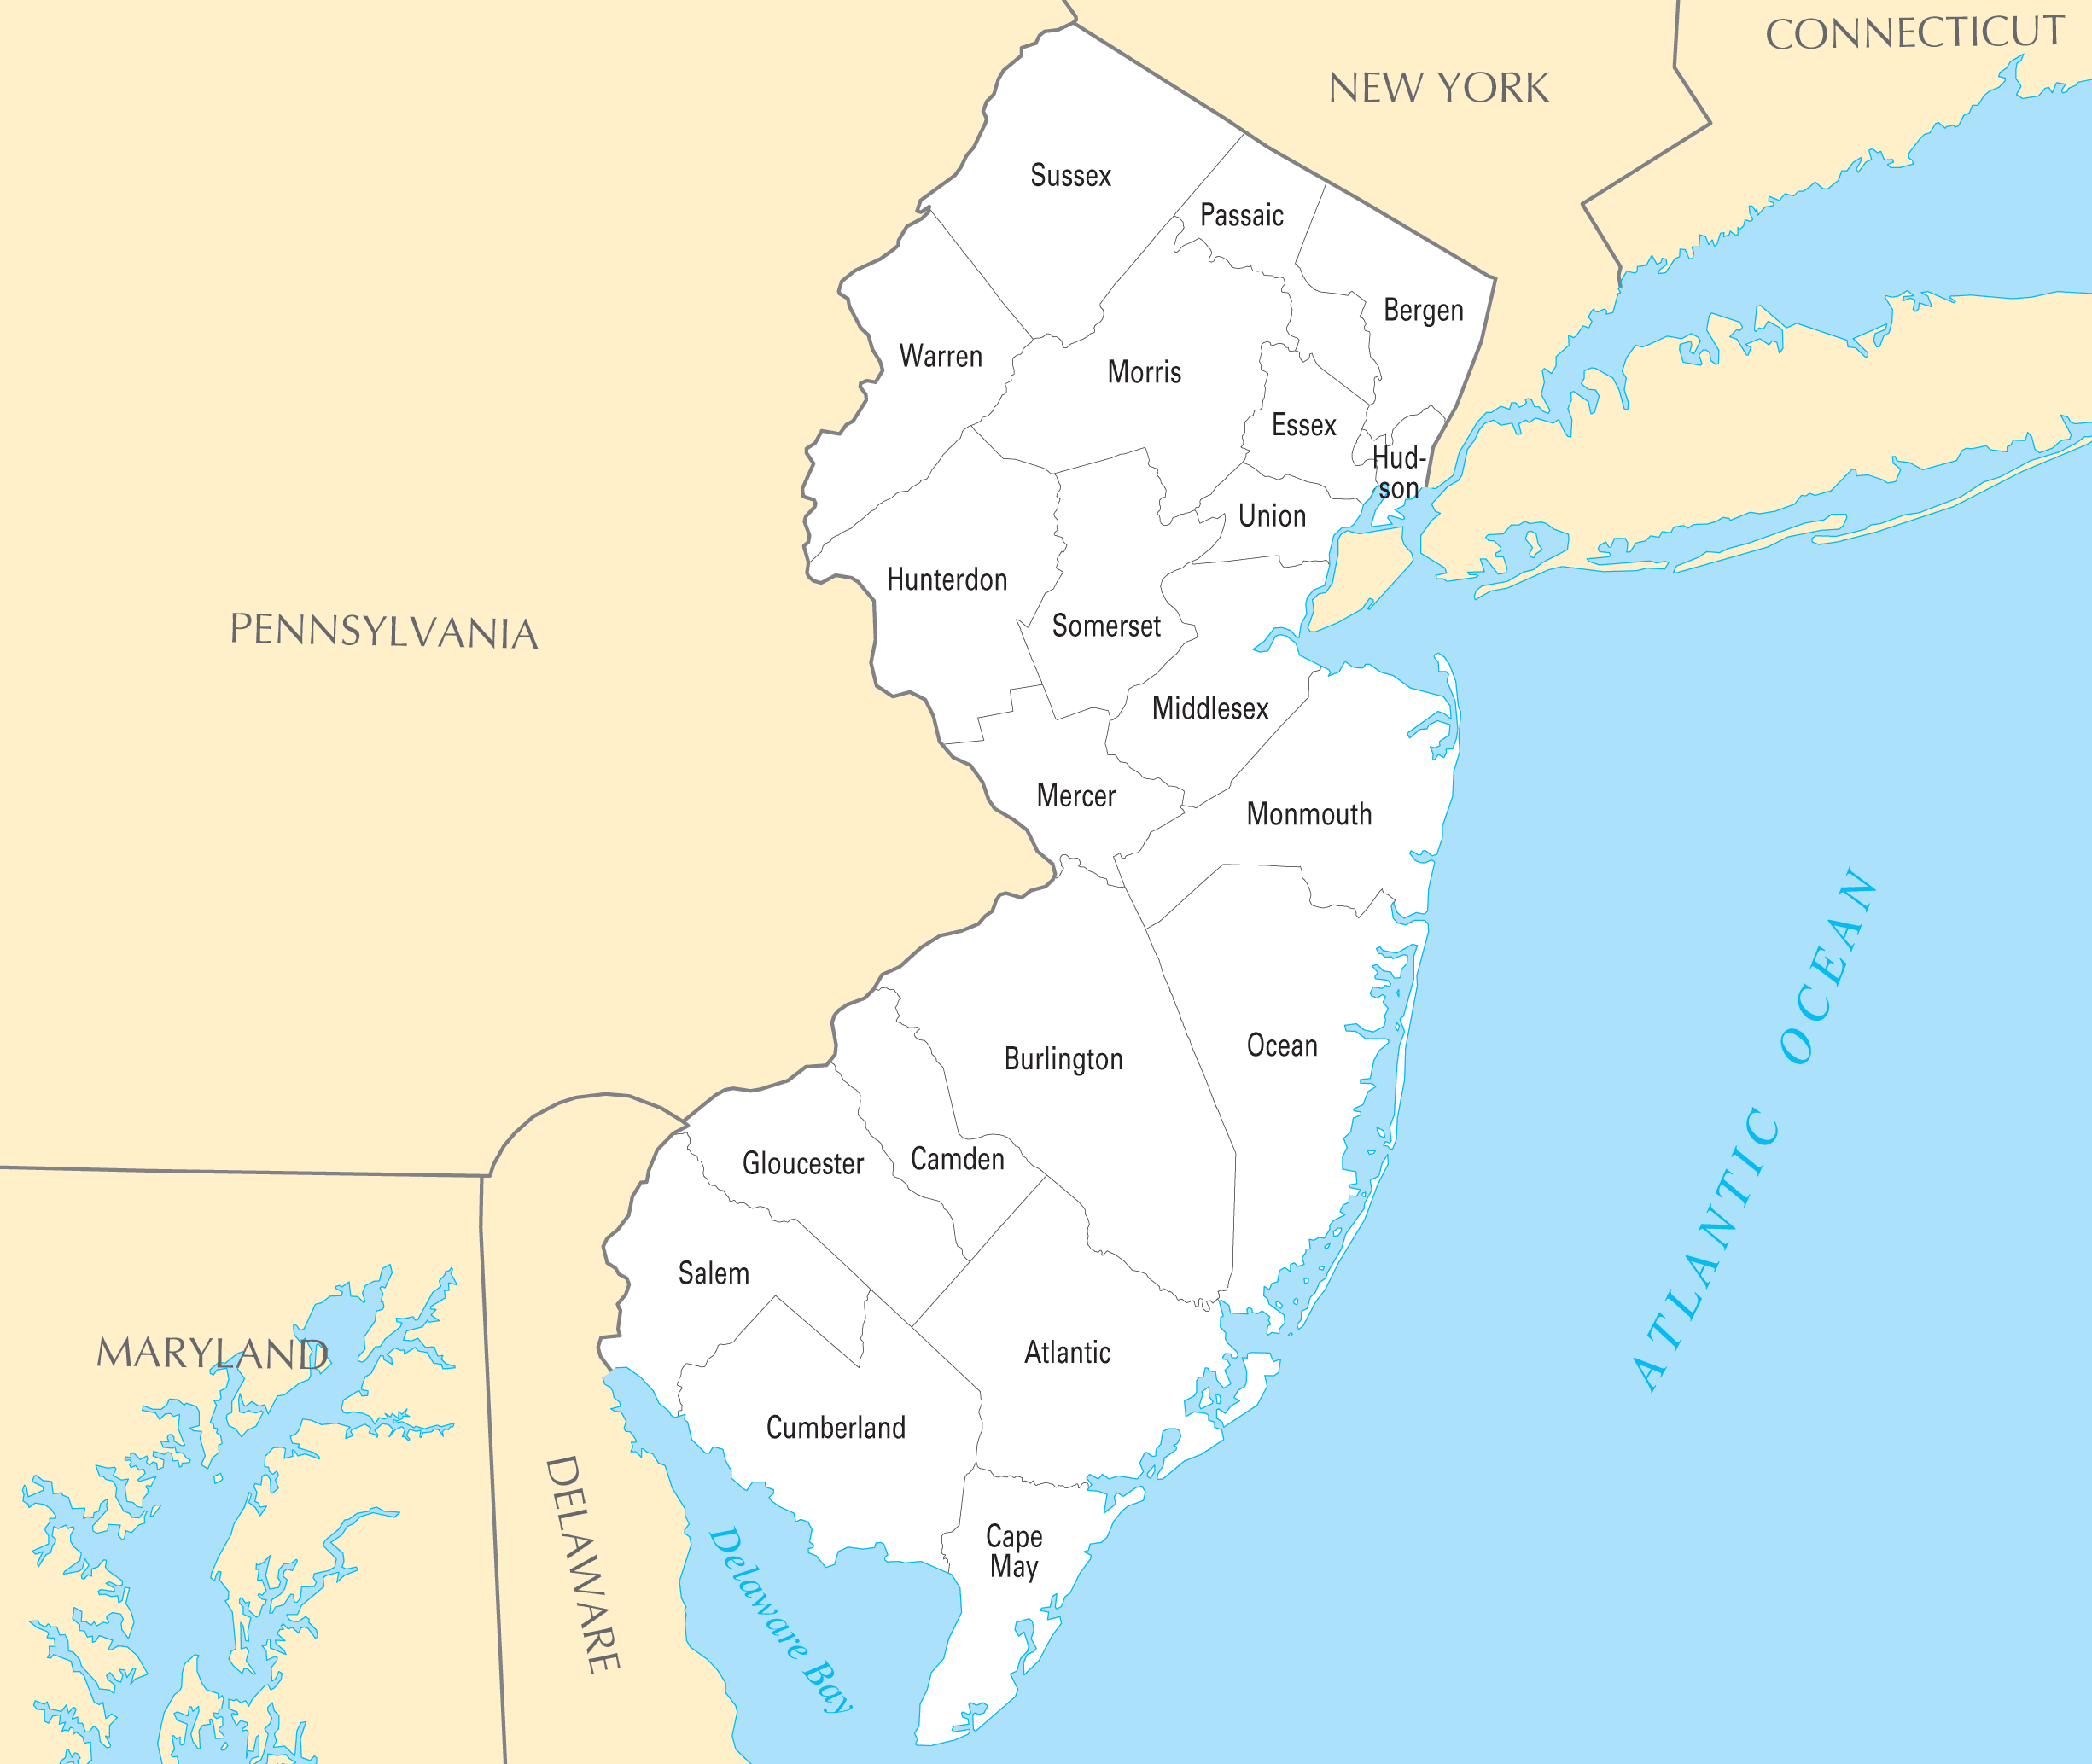 New Jersey County Map Mapsofnet - County maps of new jersey